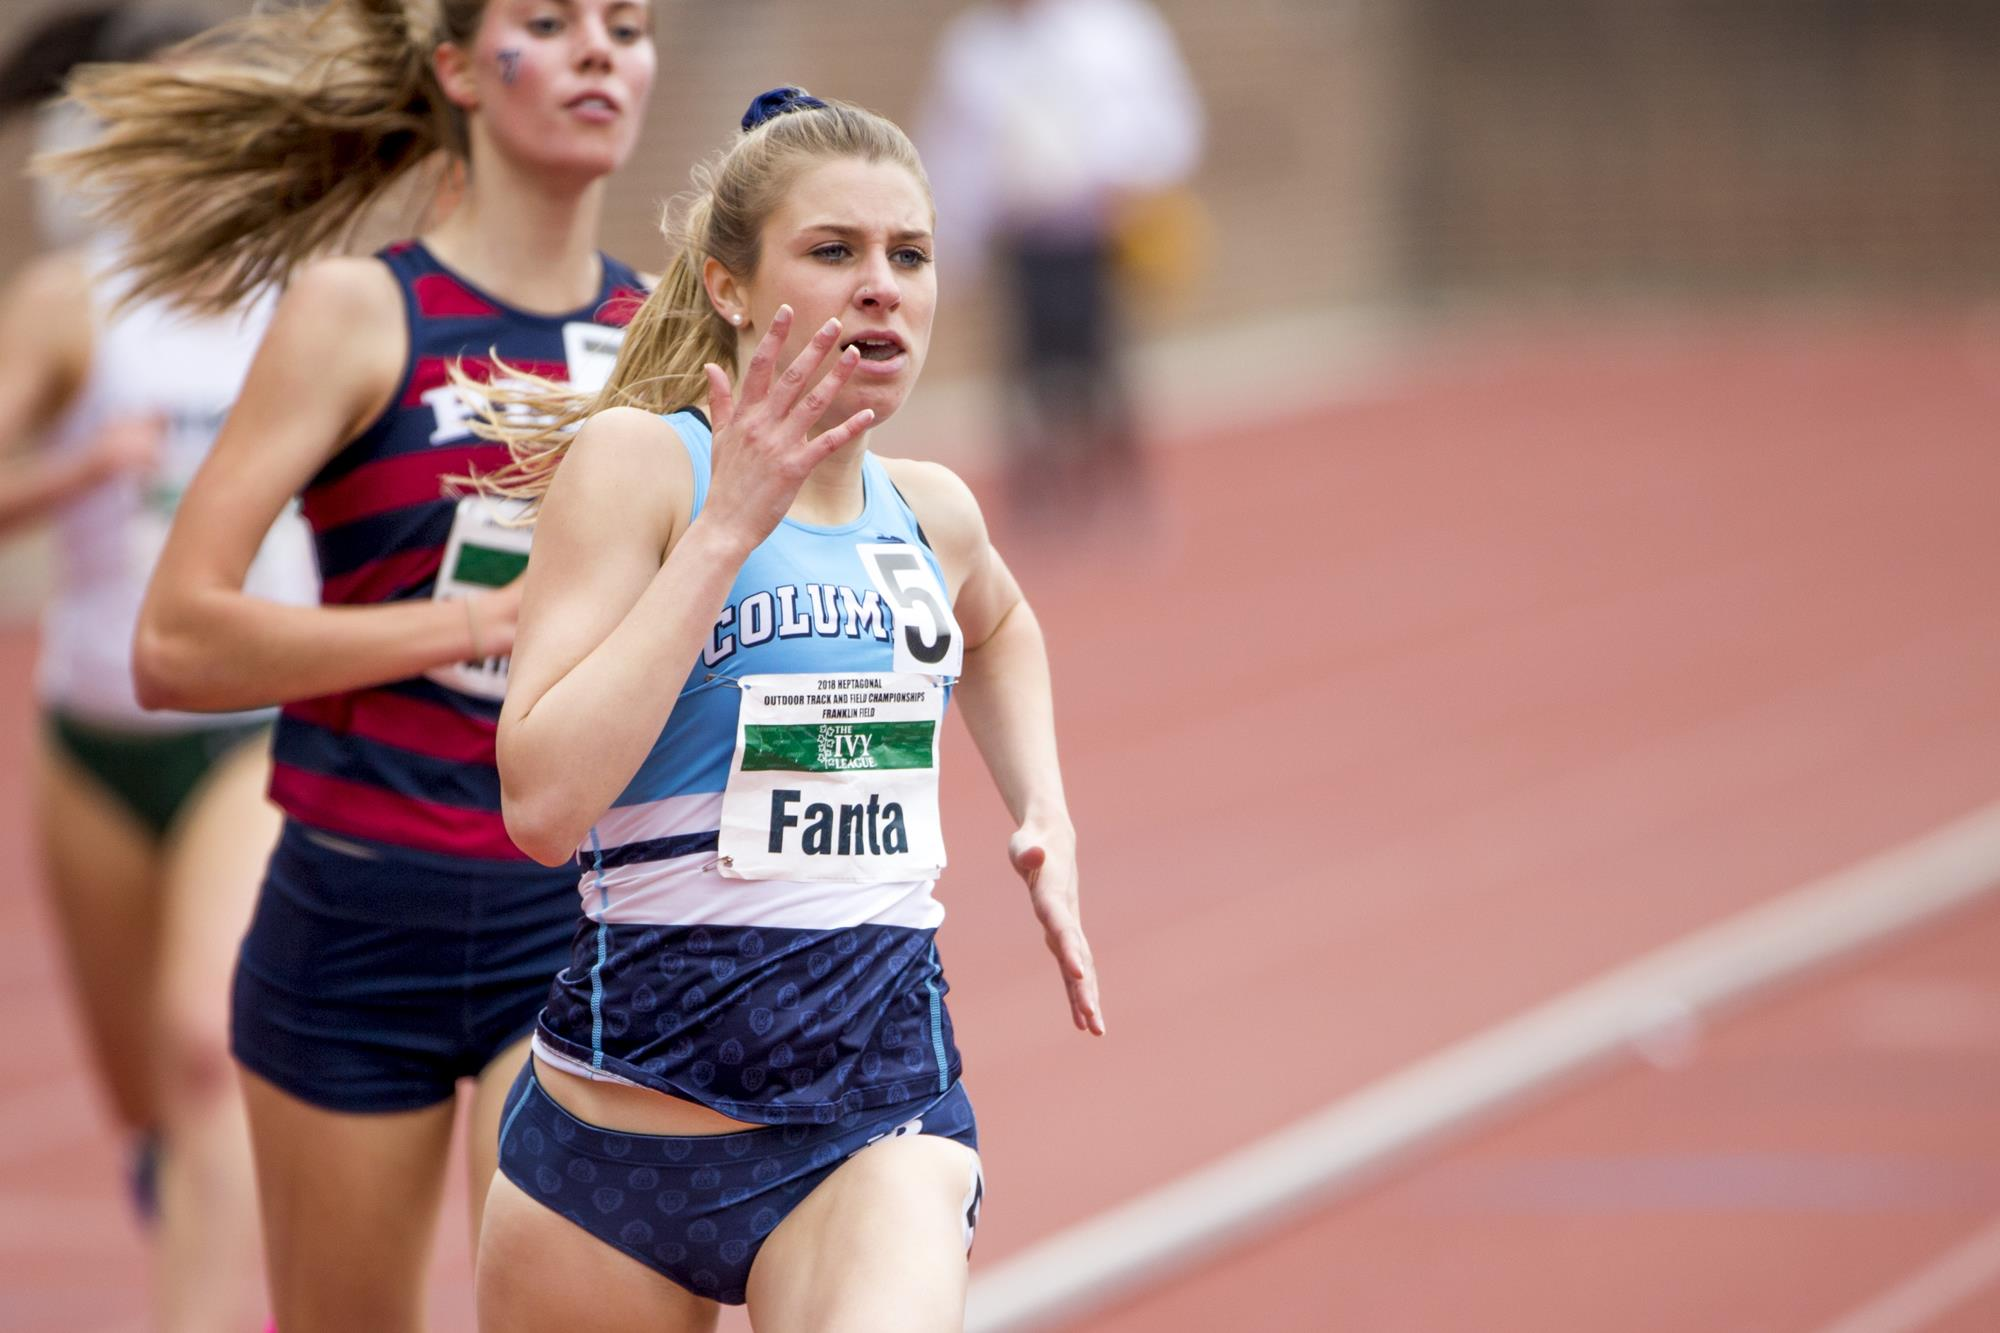 Track and Field - Columbia University Athletics